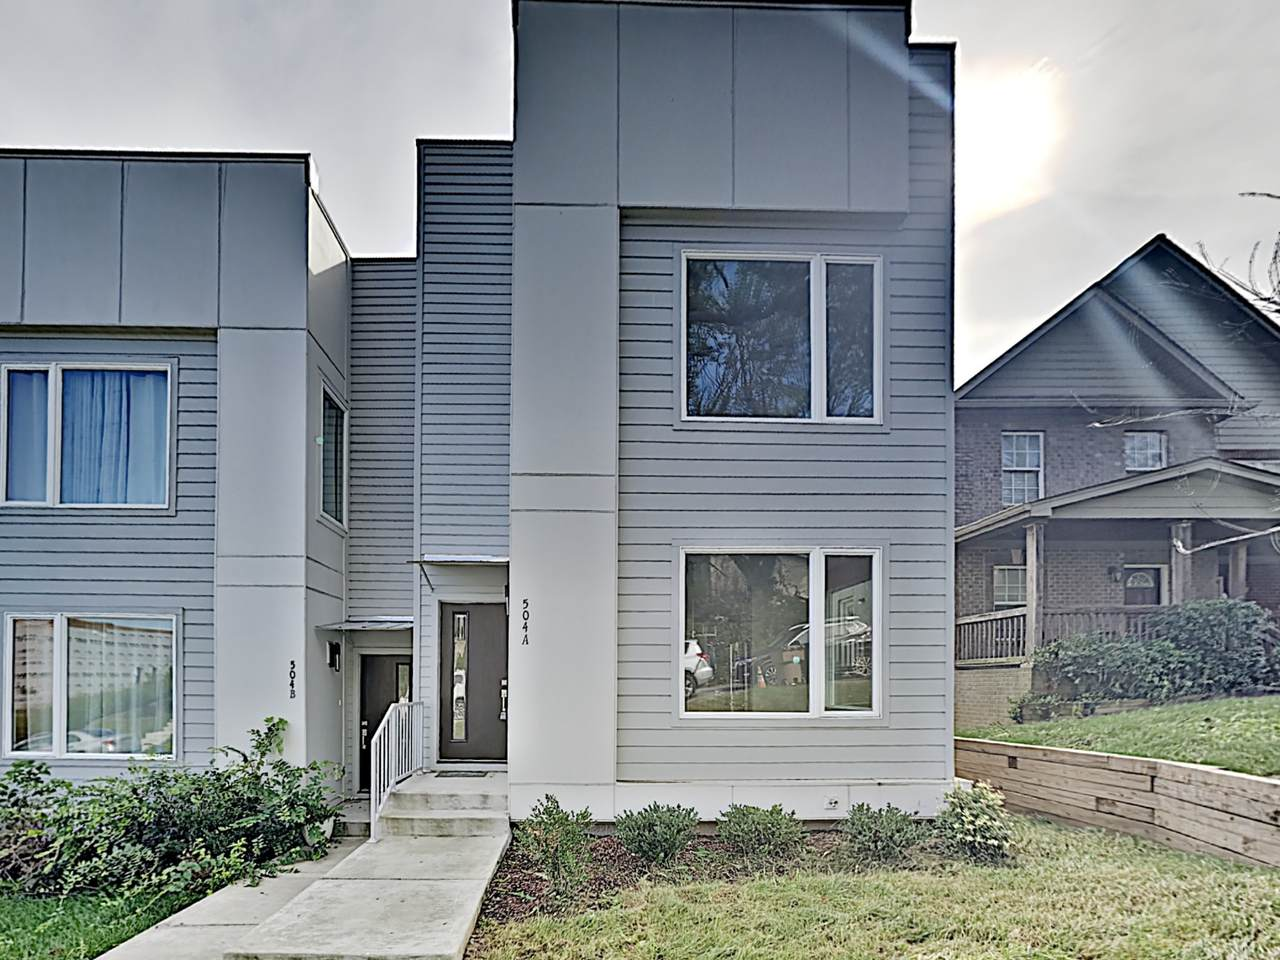 504A 36th Ave - Photo 1